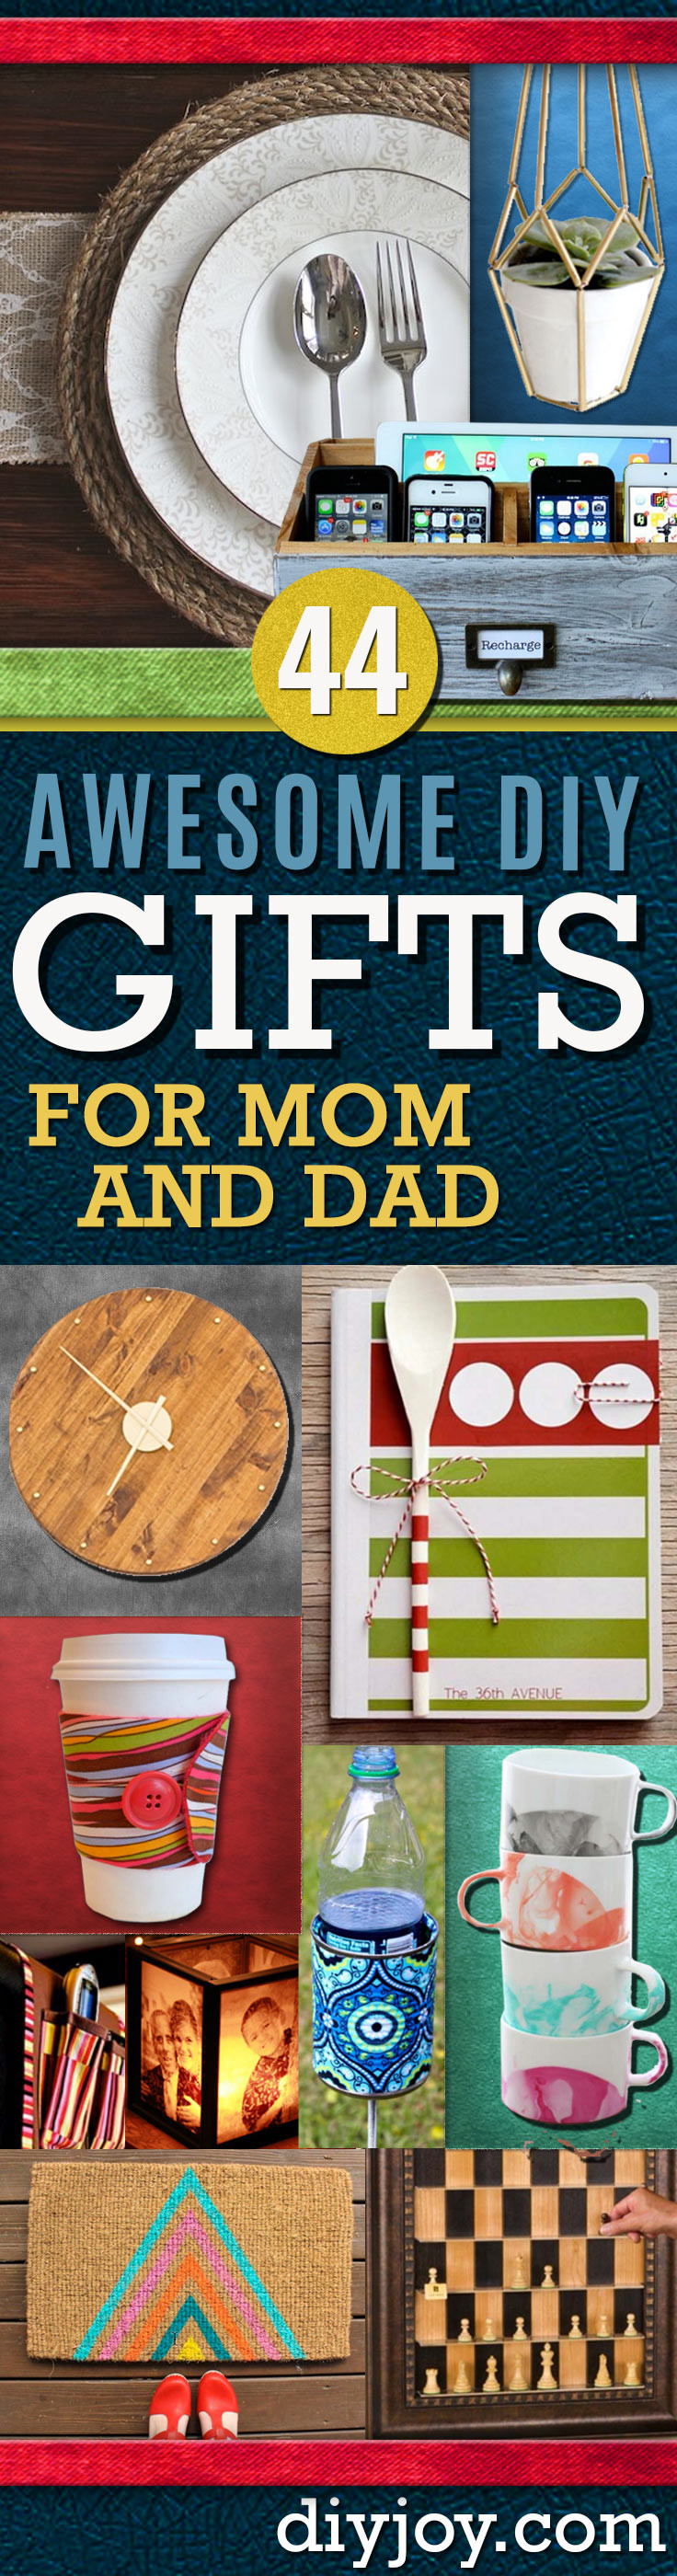 DIY Christmas Gifts For Mom  Awesome DIY Gift Ideas Mom and Dad Will Love